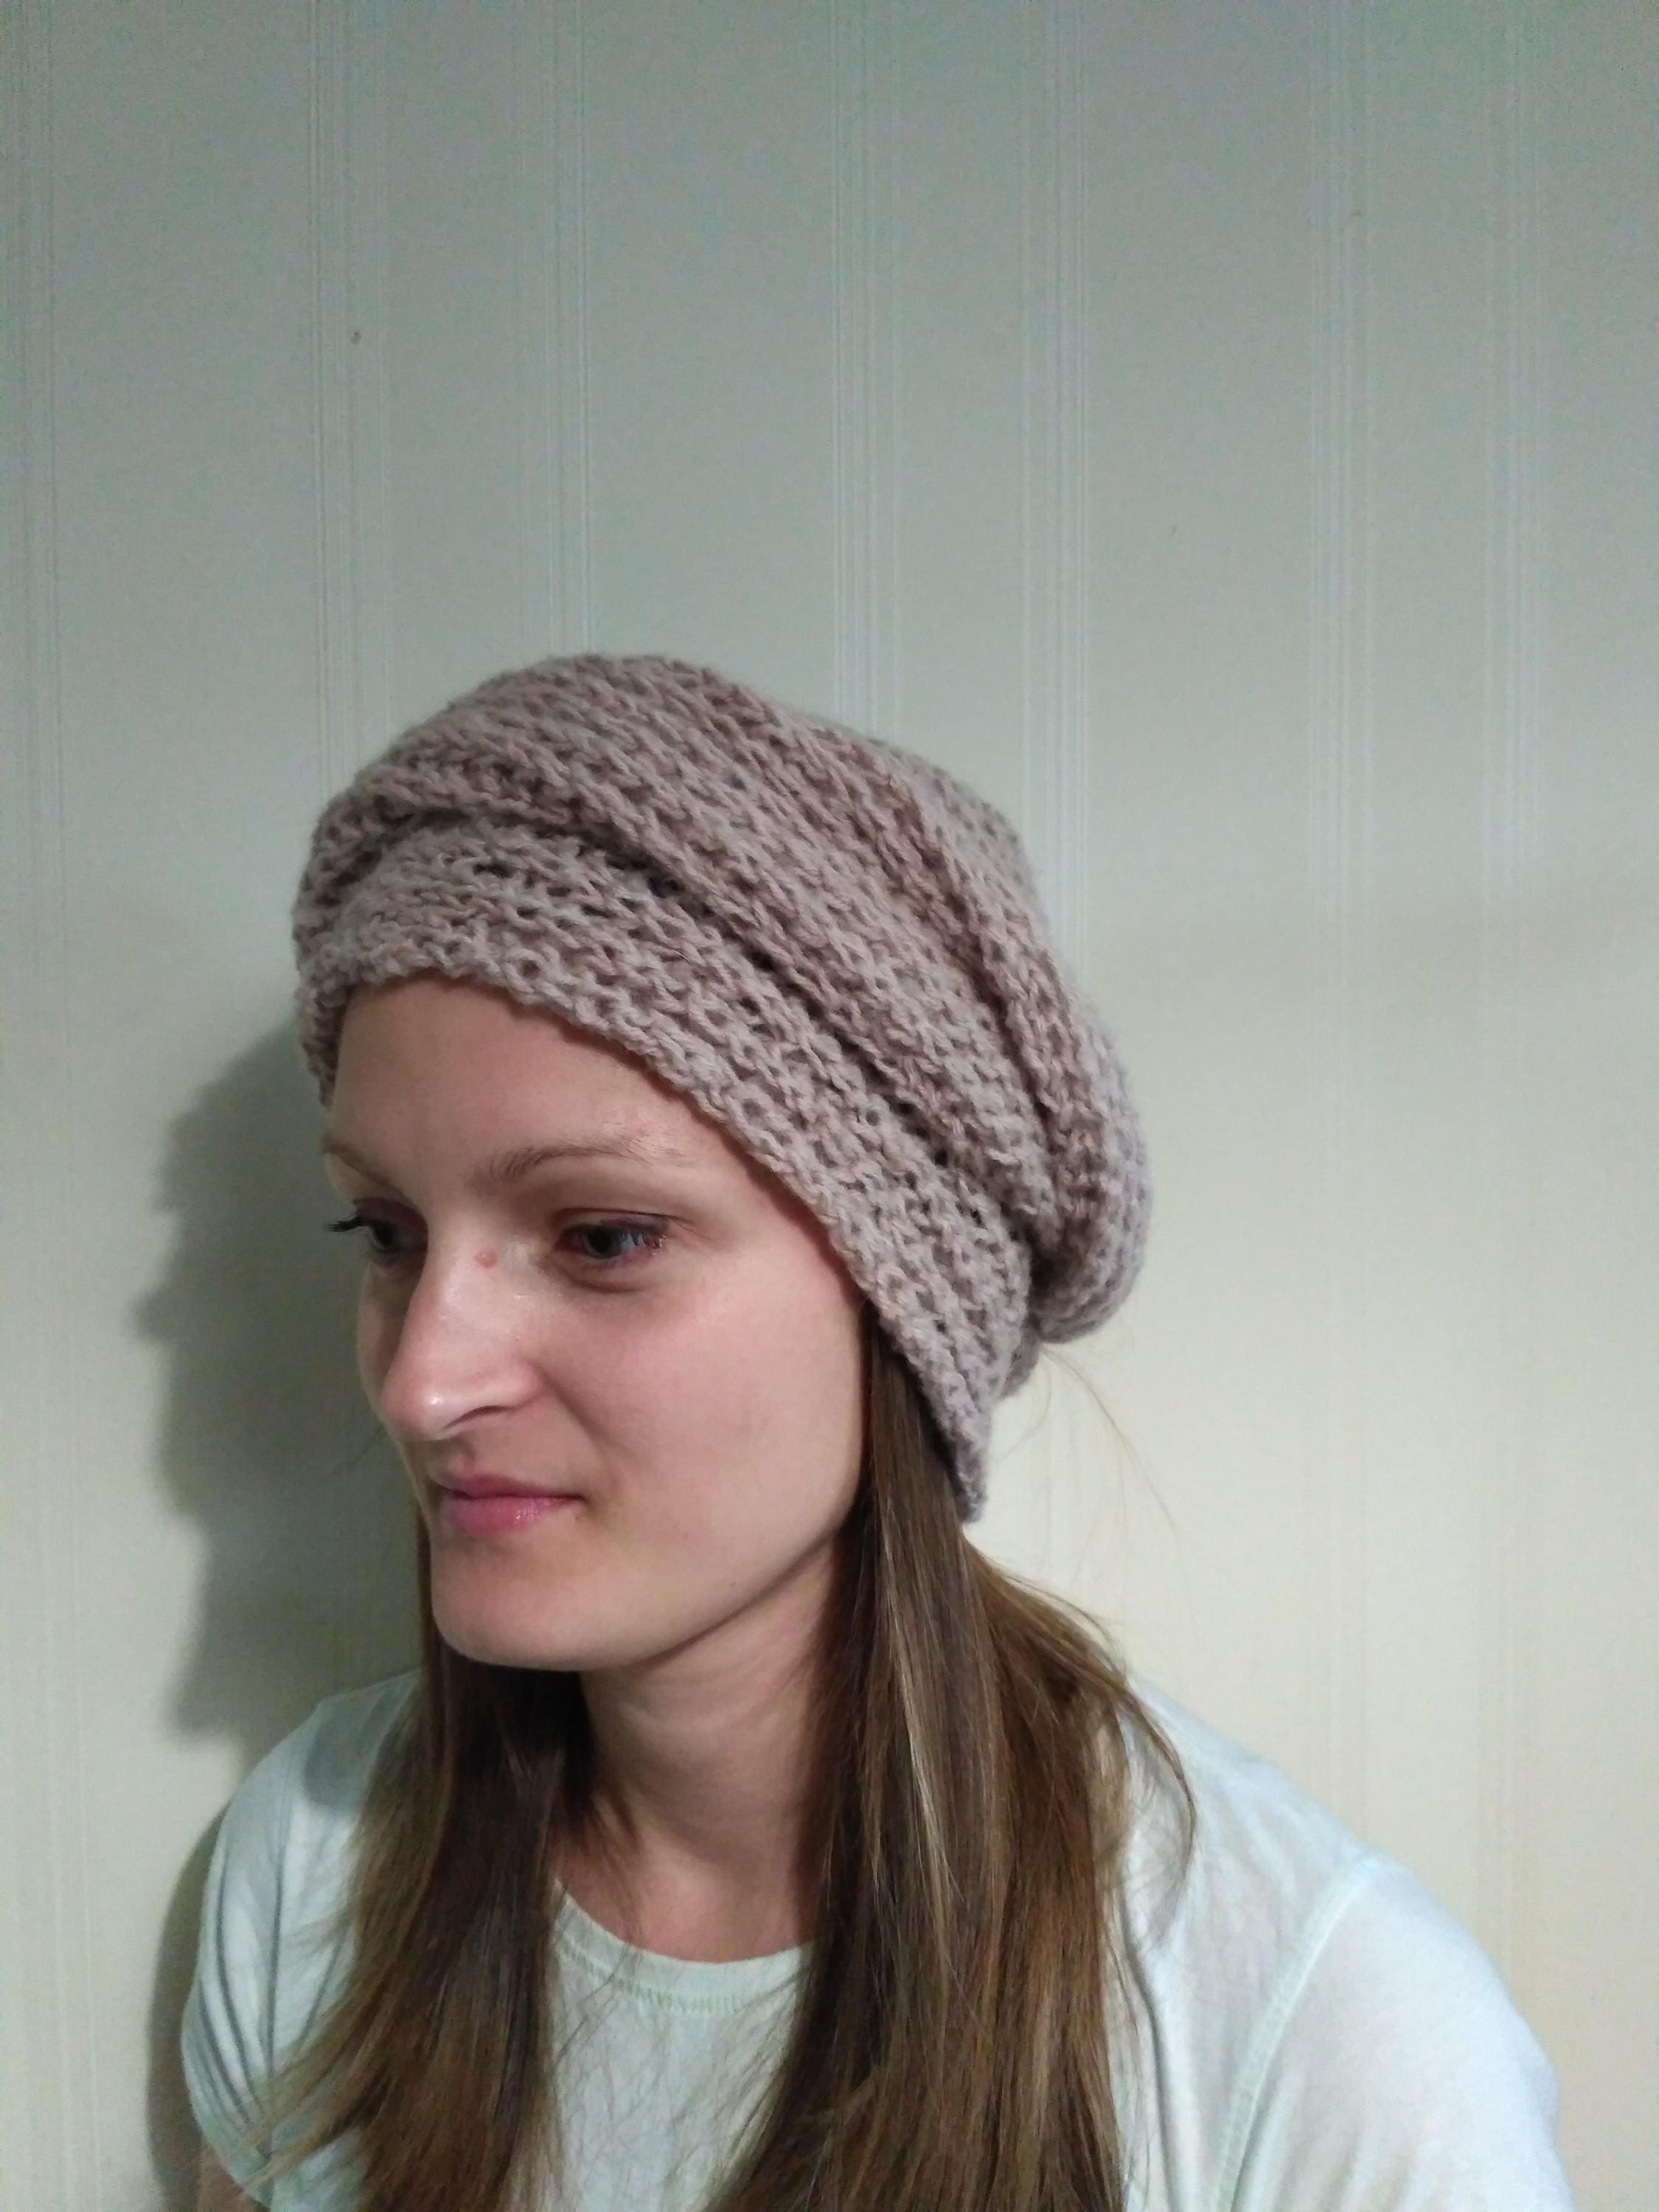 Chalma Knitted hat for women and adolescents hat with a